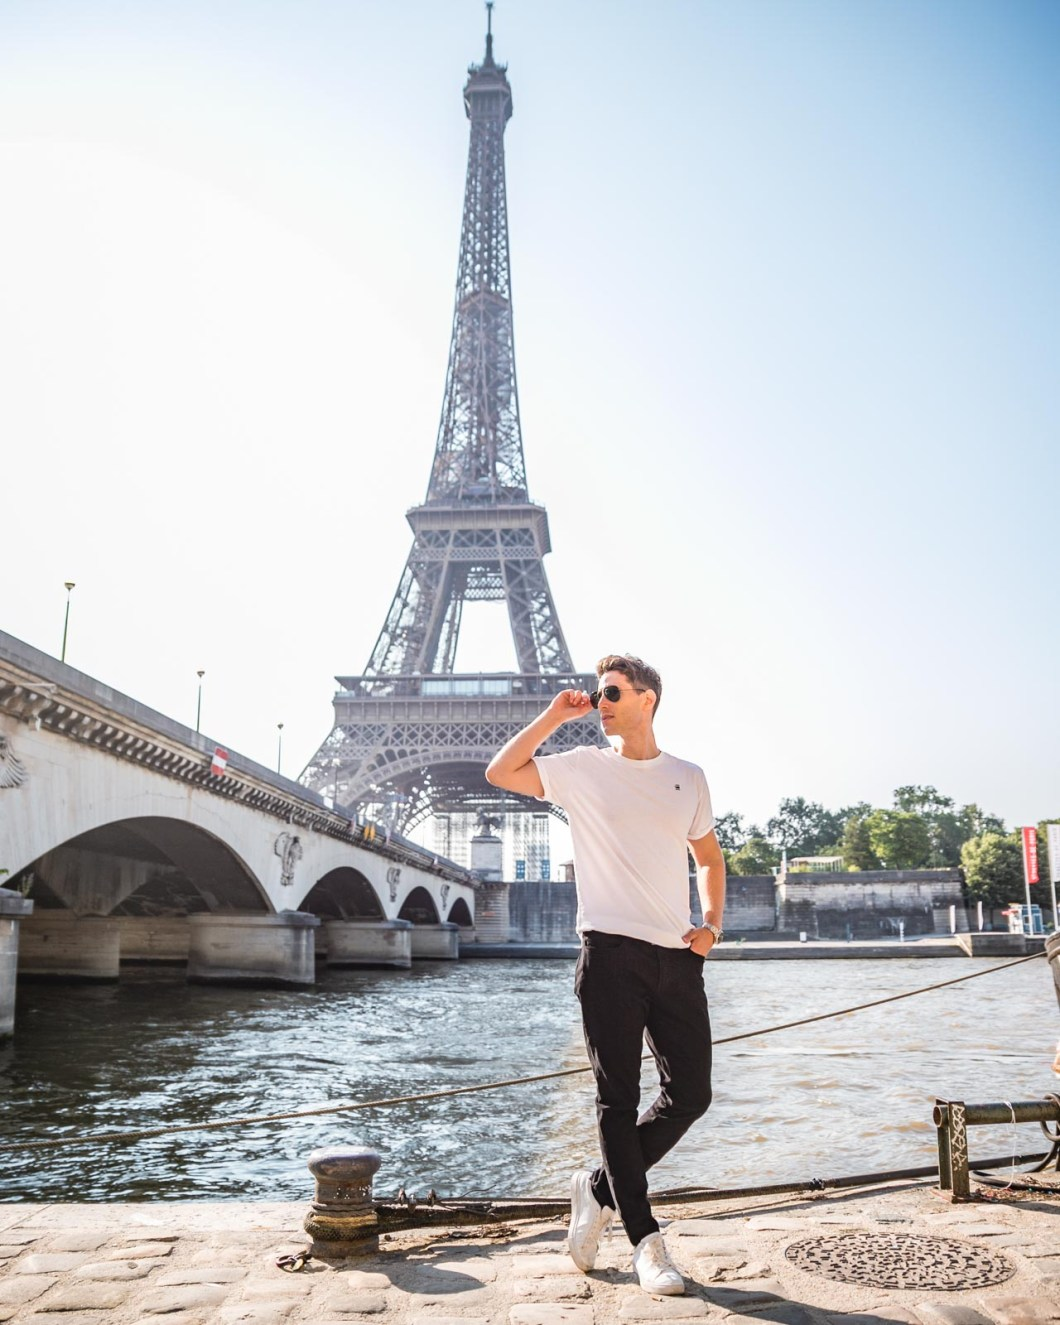 Photoshoot at Pont d'Iena with the Eiffel Tower